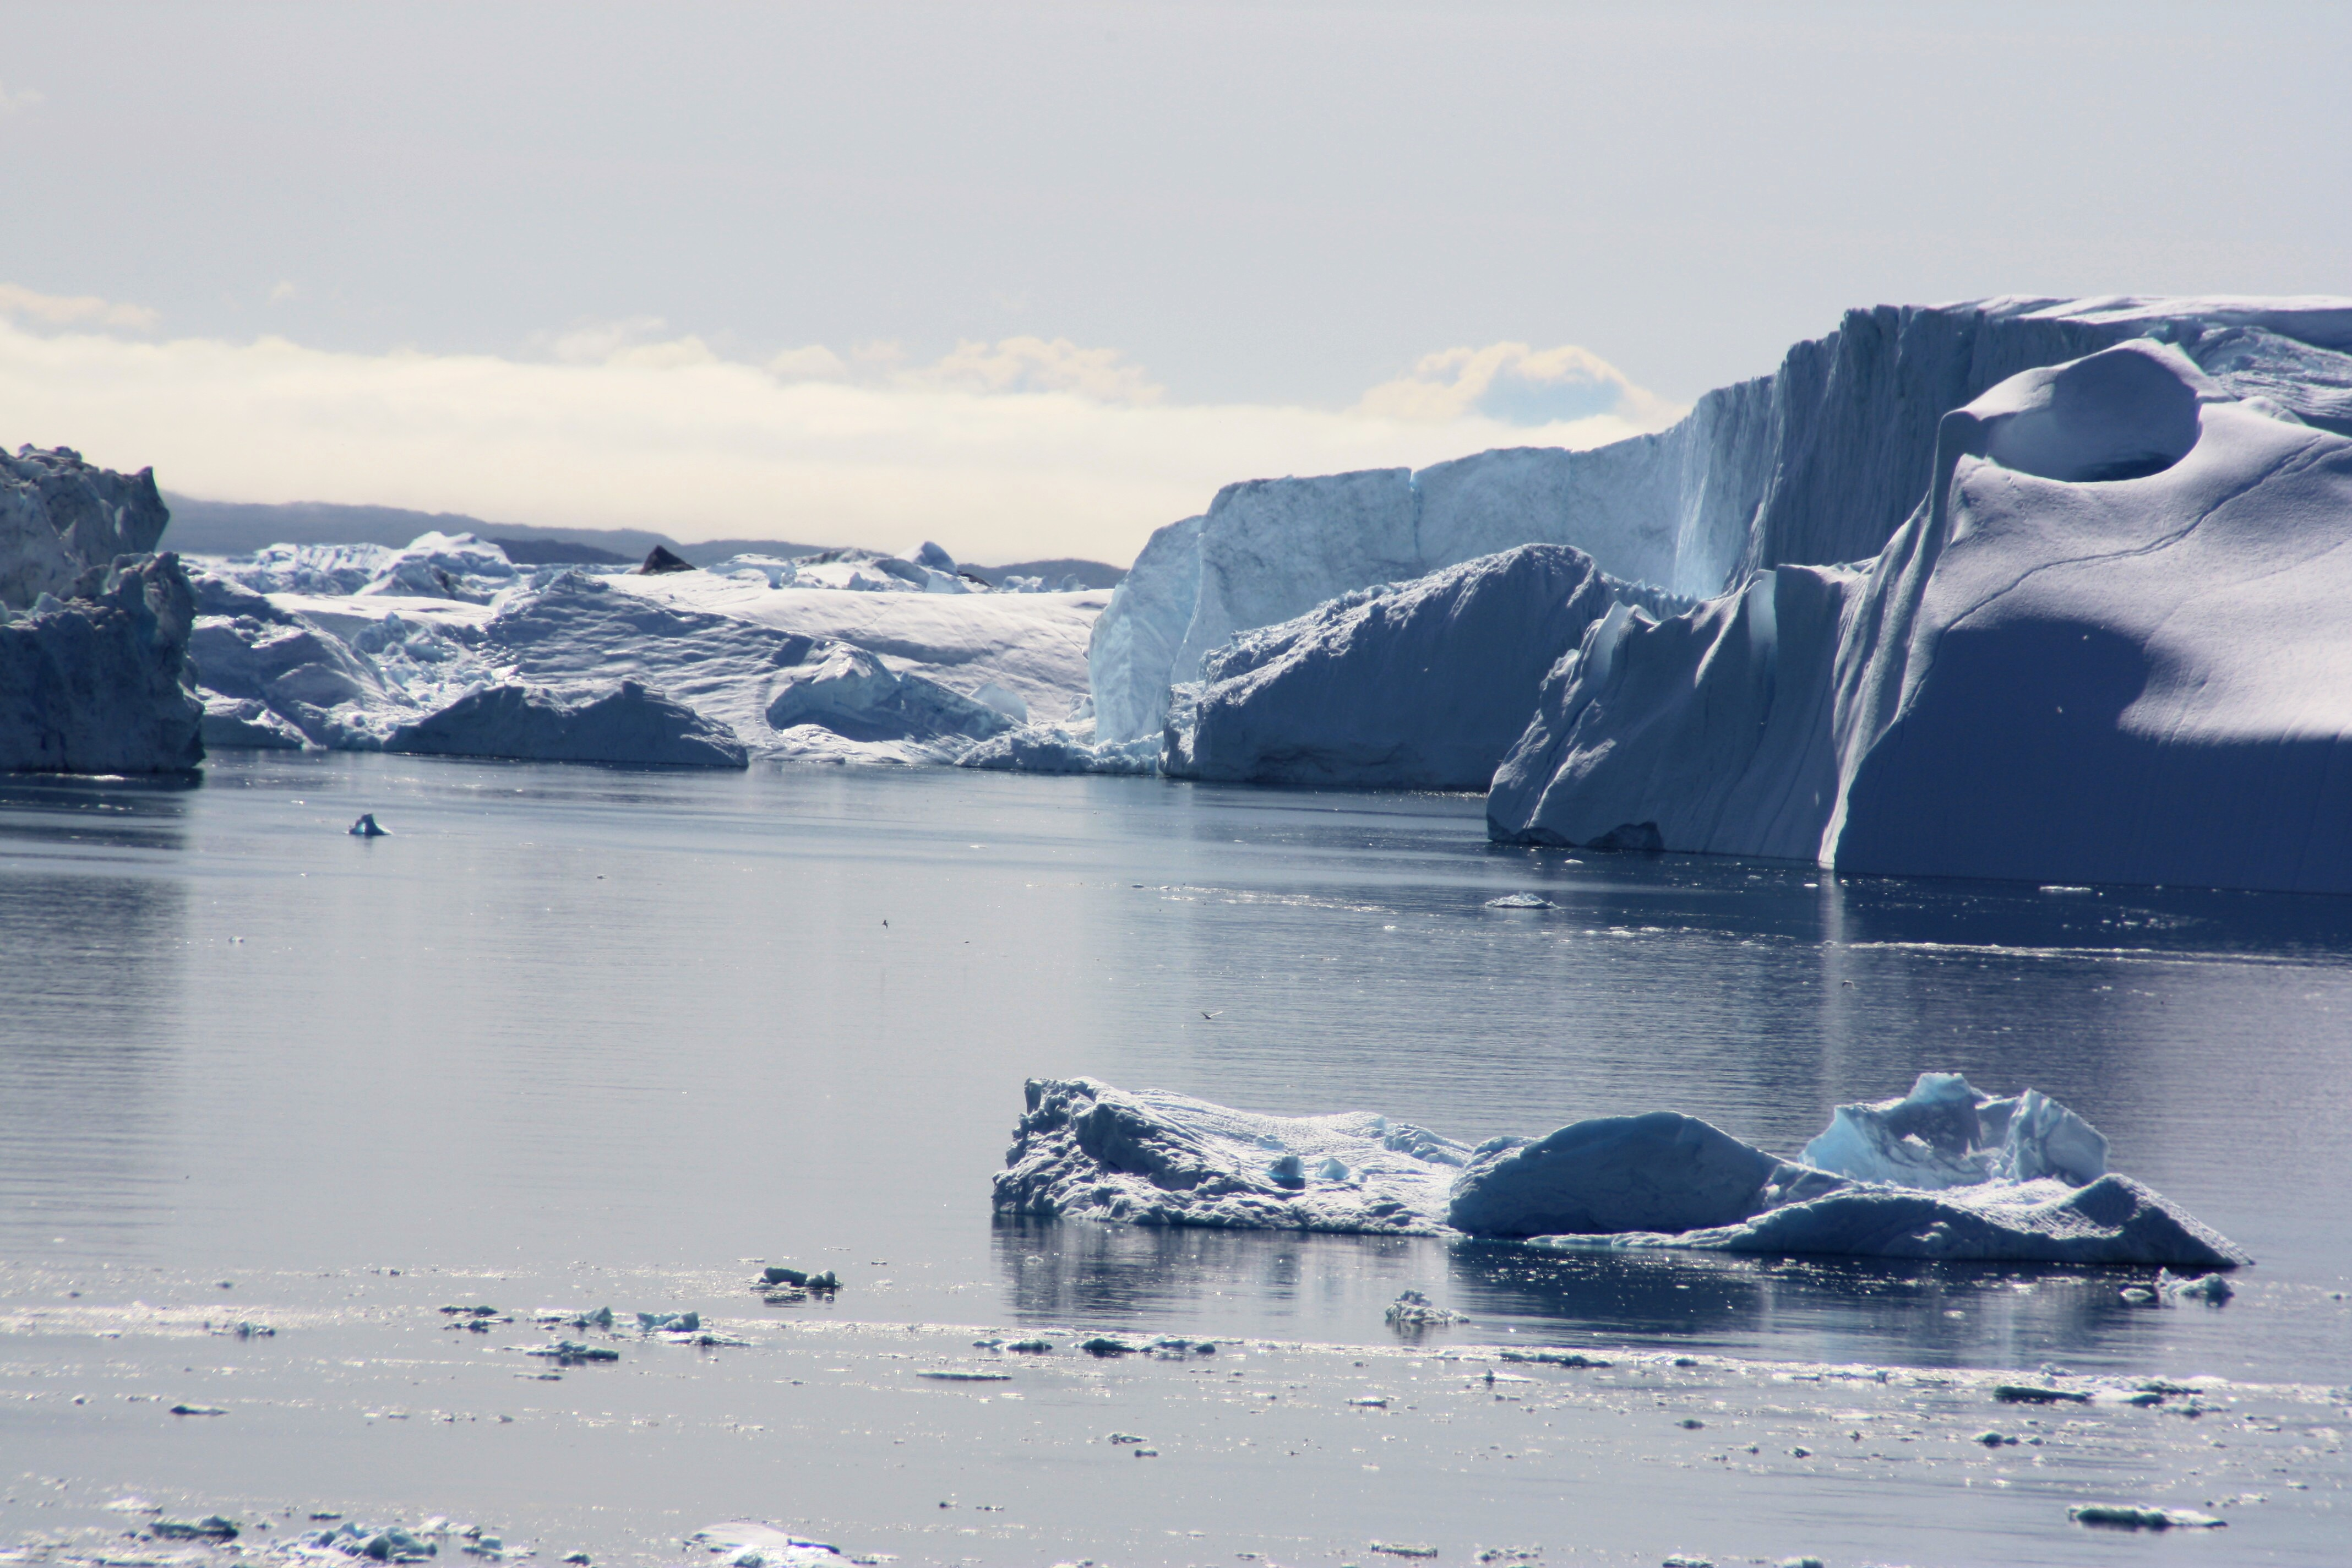 The Sermeq Kujualleq glacier discharges icebergs into the sea. (Irene Quaile/Ilulissat, 2009)